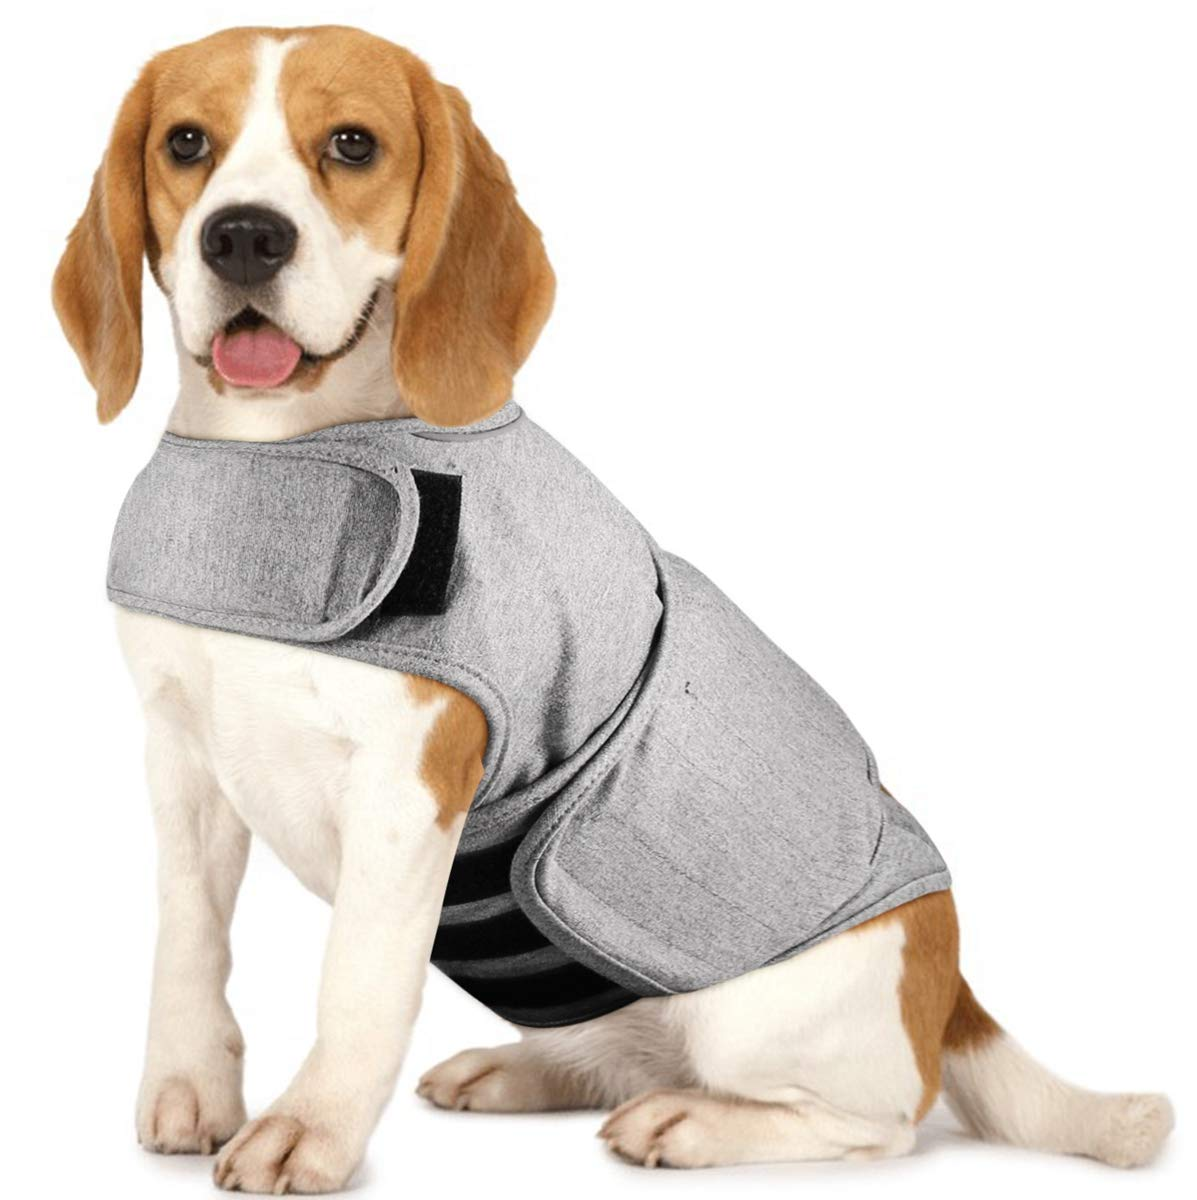 Royal Wise Dog Thunder Jacket Comfort Anti Anxiety Stress Relief Calming Wrap Vest Separation Coat Shirt (Small-XLarge) by royalwise